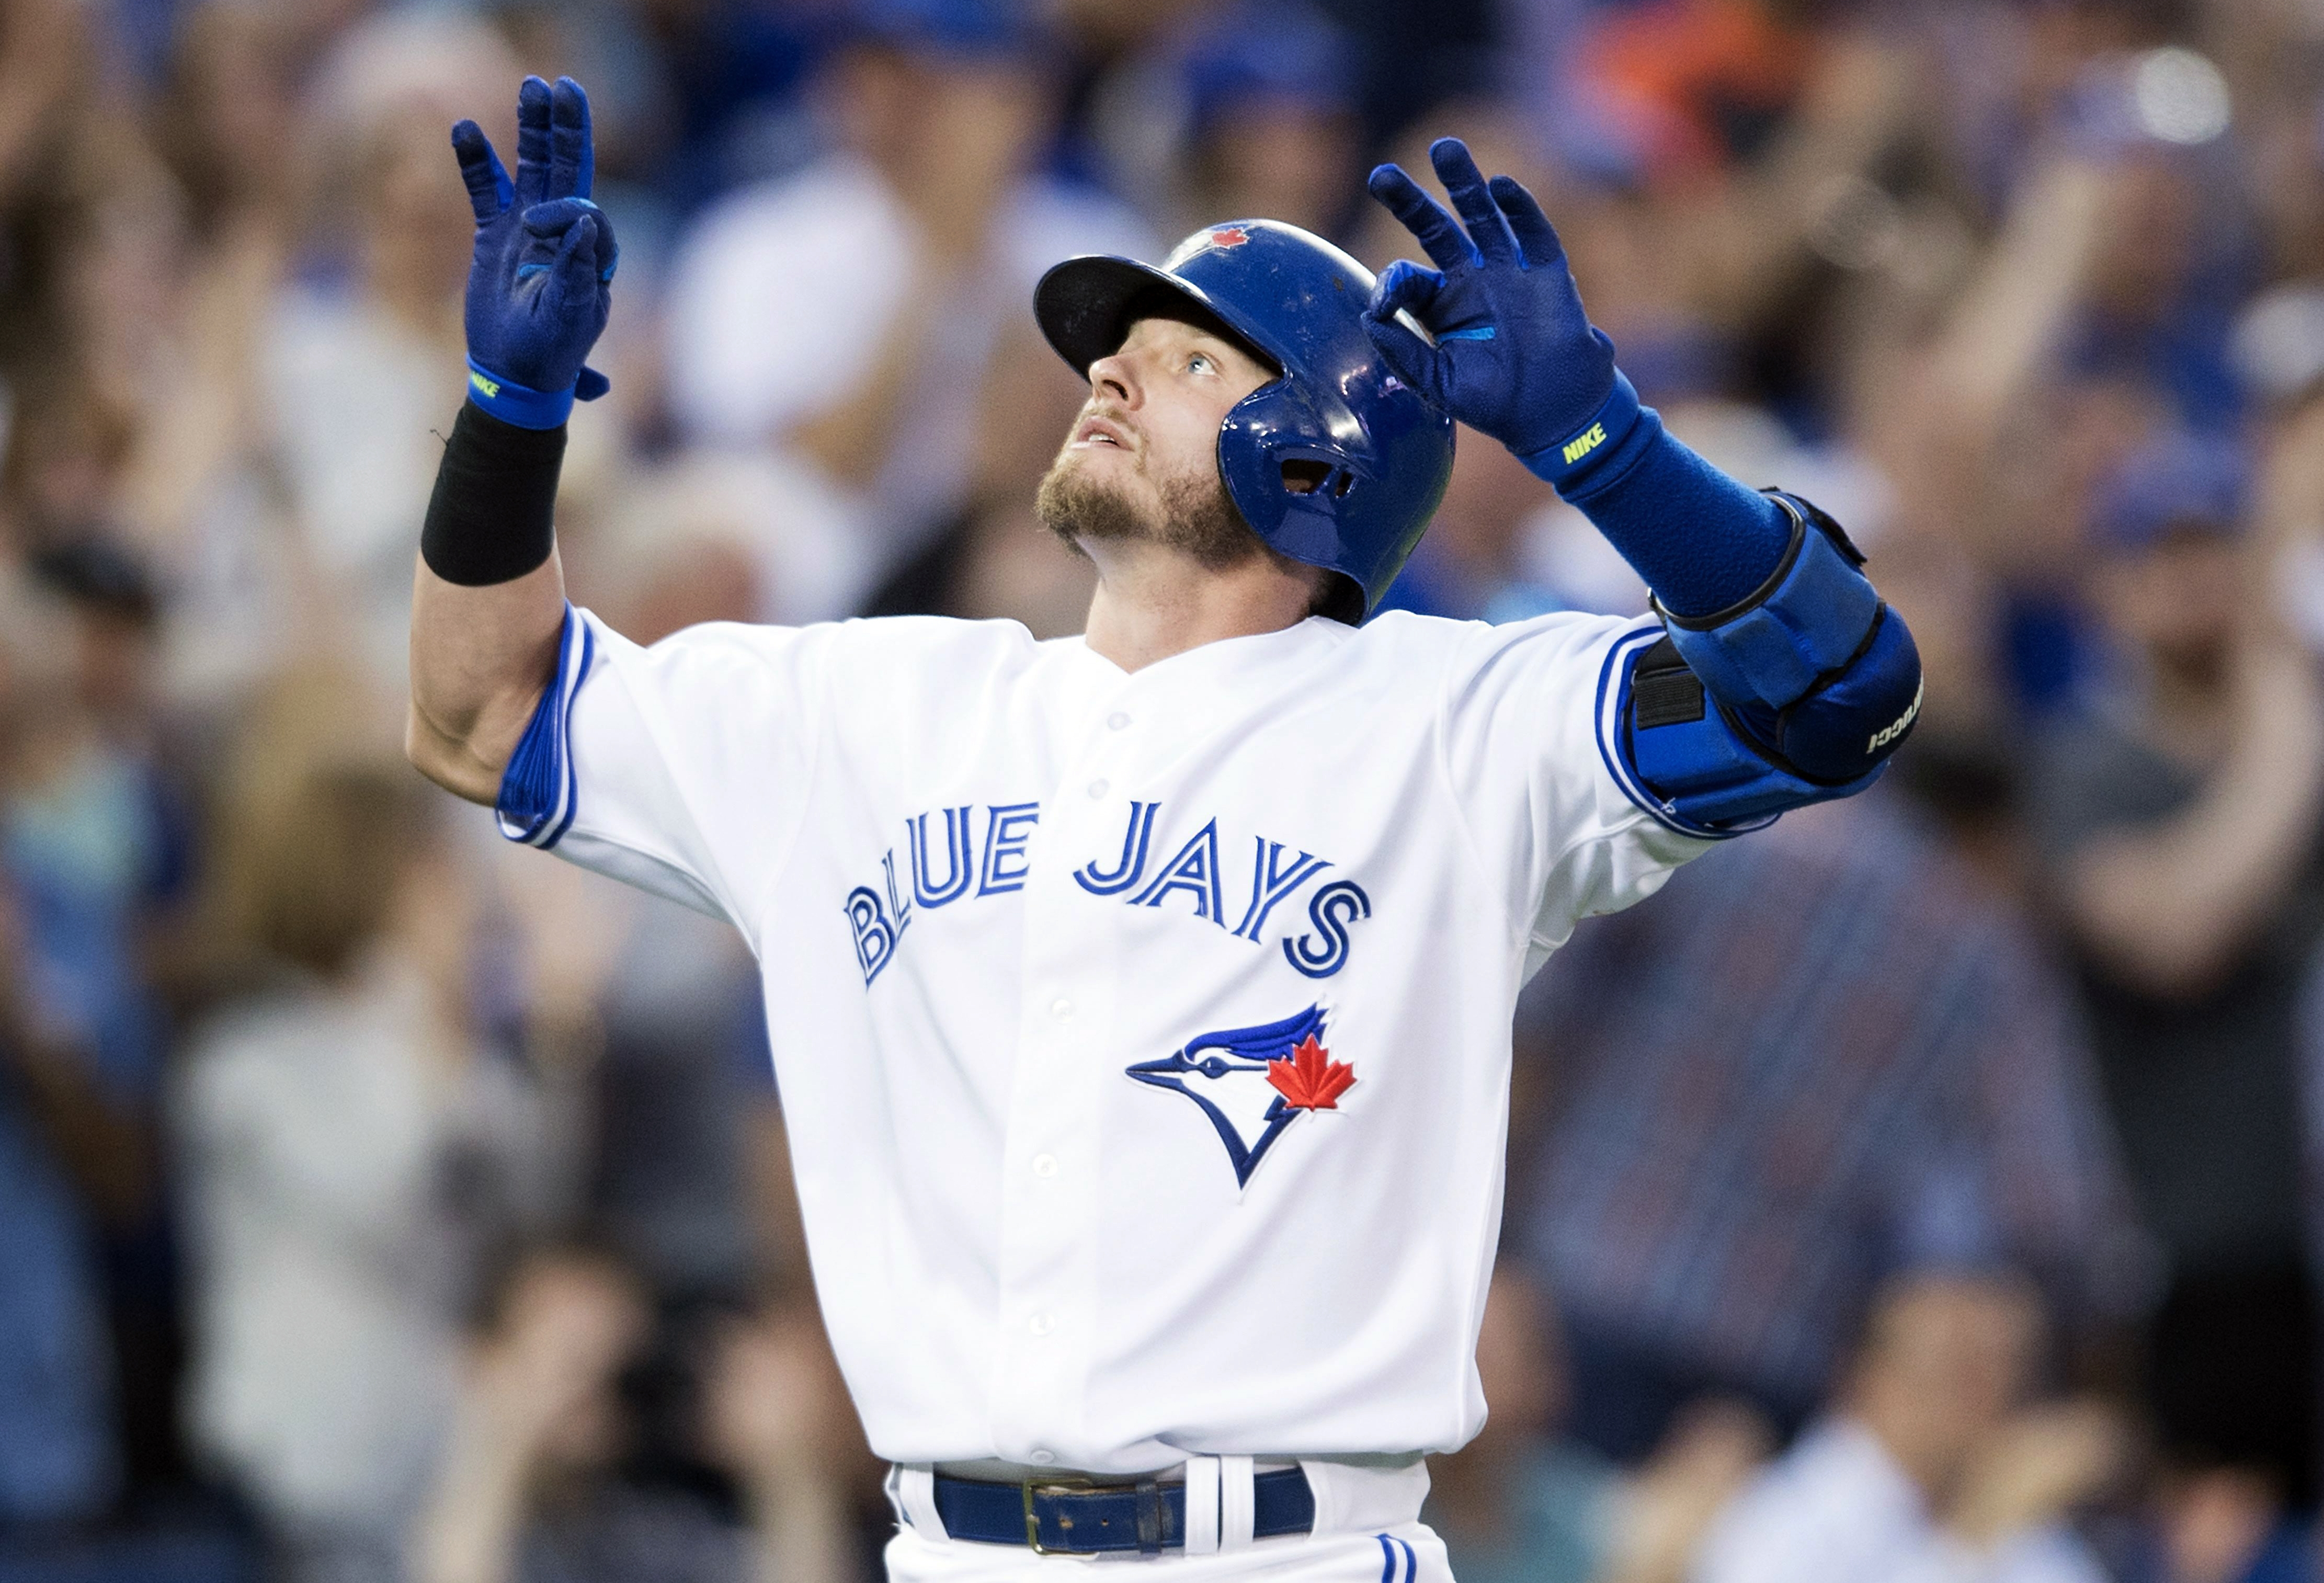 Toronto Blue Jays' Josh Donaldson celebrates a solo home run during third-inning baseball game action against the Detroit Tigers in Toronto, Friday, Aug. 28, 2015. (Darren Calabrese/The Canadian Press via AP) MANDATORY CREDIT